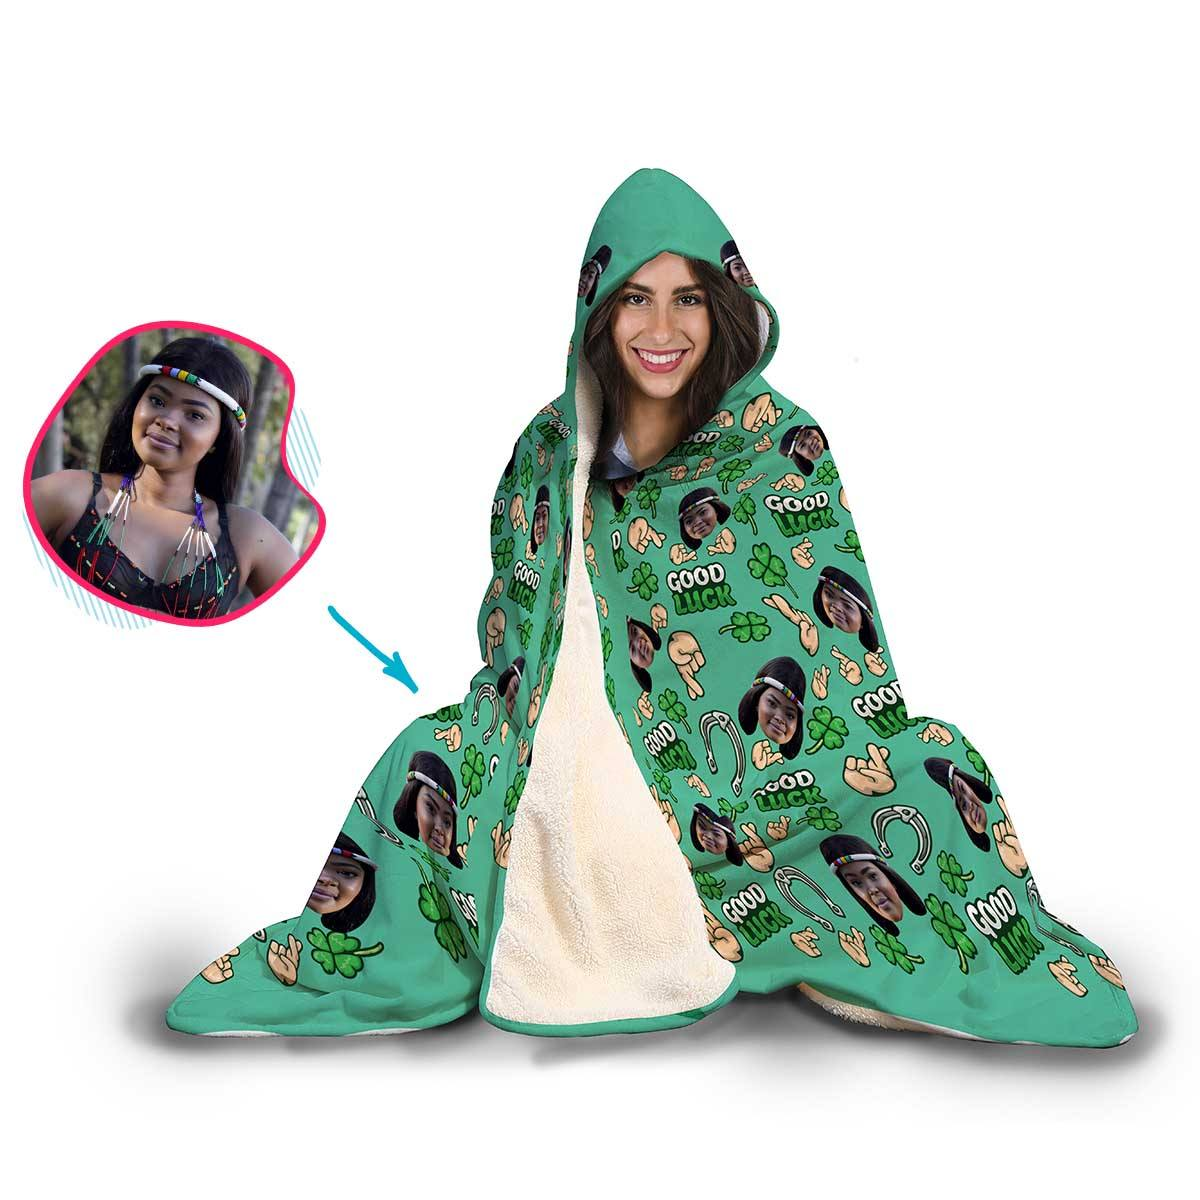 Good Luck Personalized Hooded Blanket